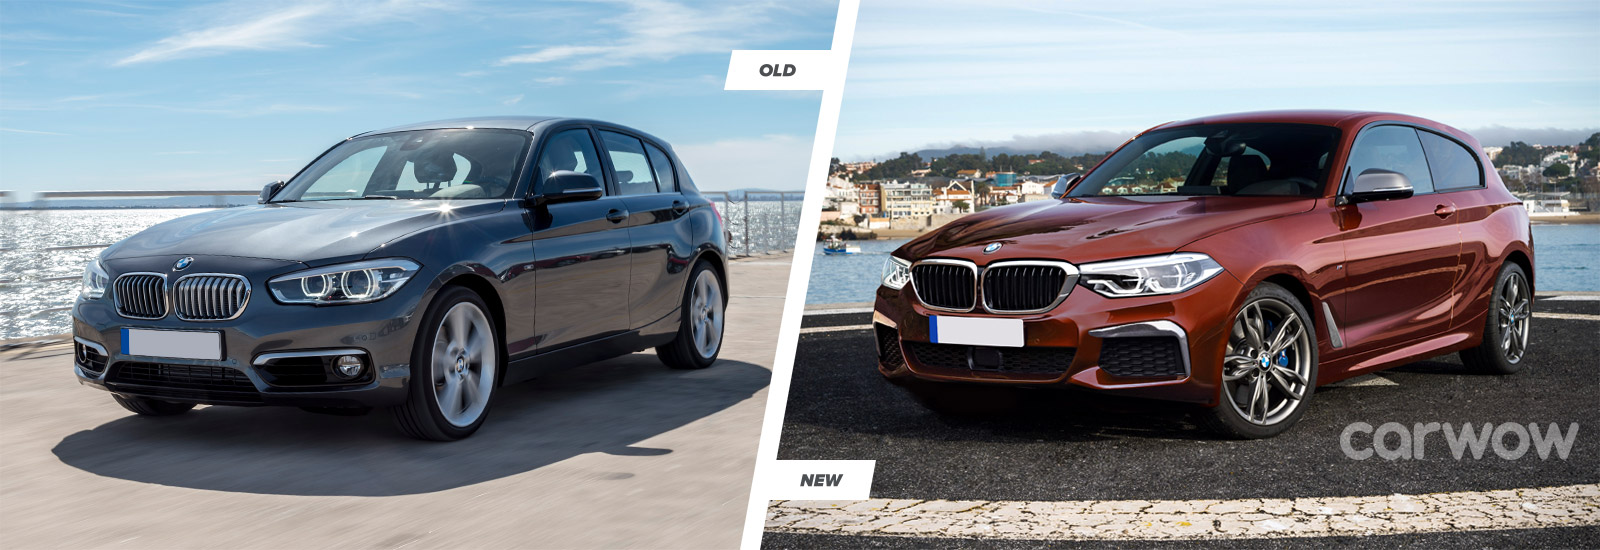 bmw 1 er 2018. beautiful bmw the old model left will receive a host of visual upgrades for 2019 with bmw 1 er 2018